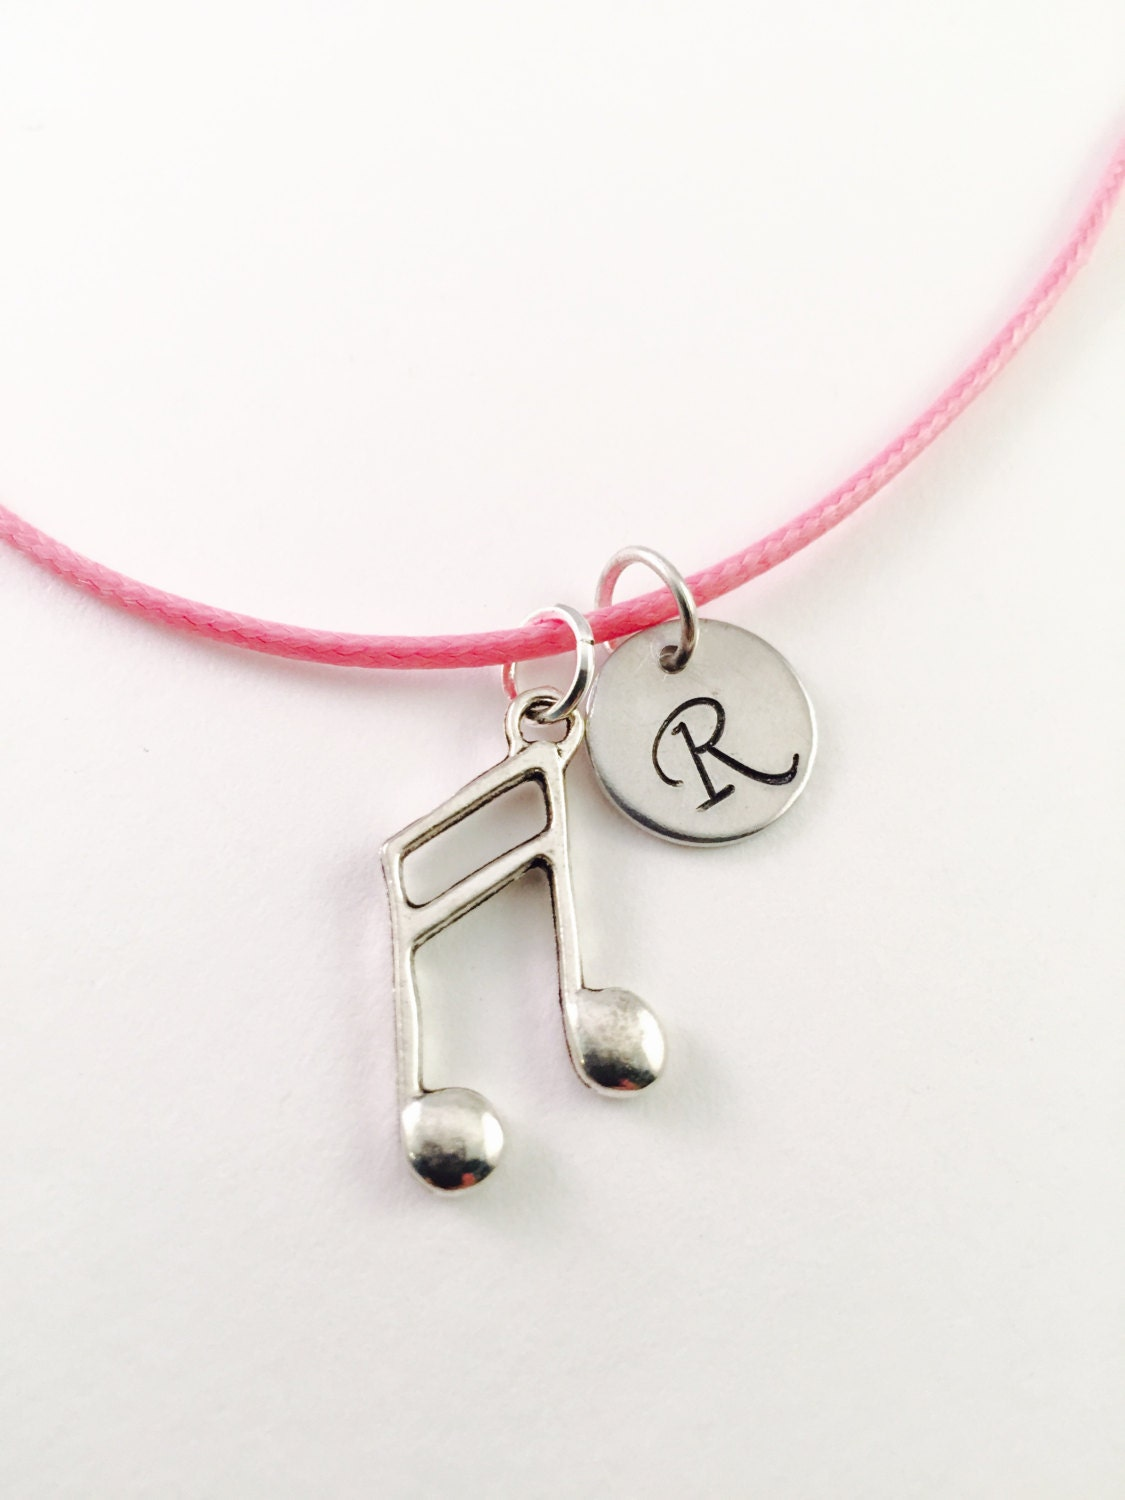 Music note necklace girls charm necklace Vocalist charm